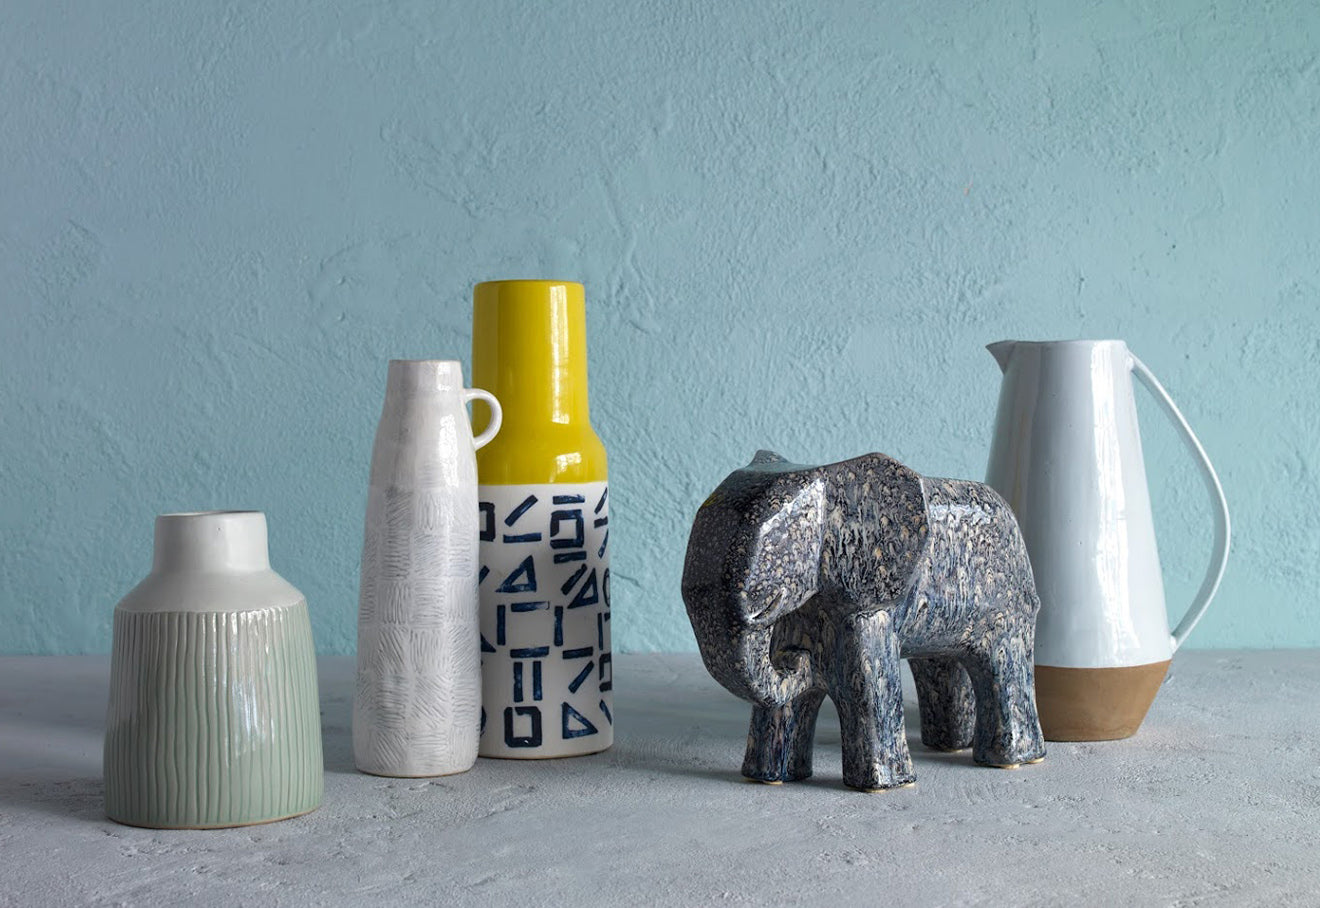 Habitat New Season collection ceramic vases and home accessories